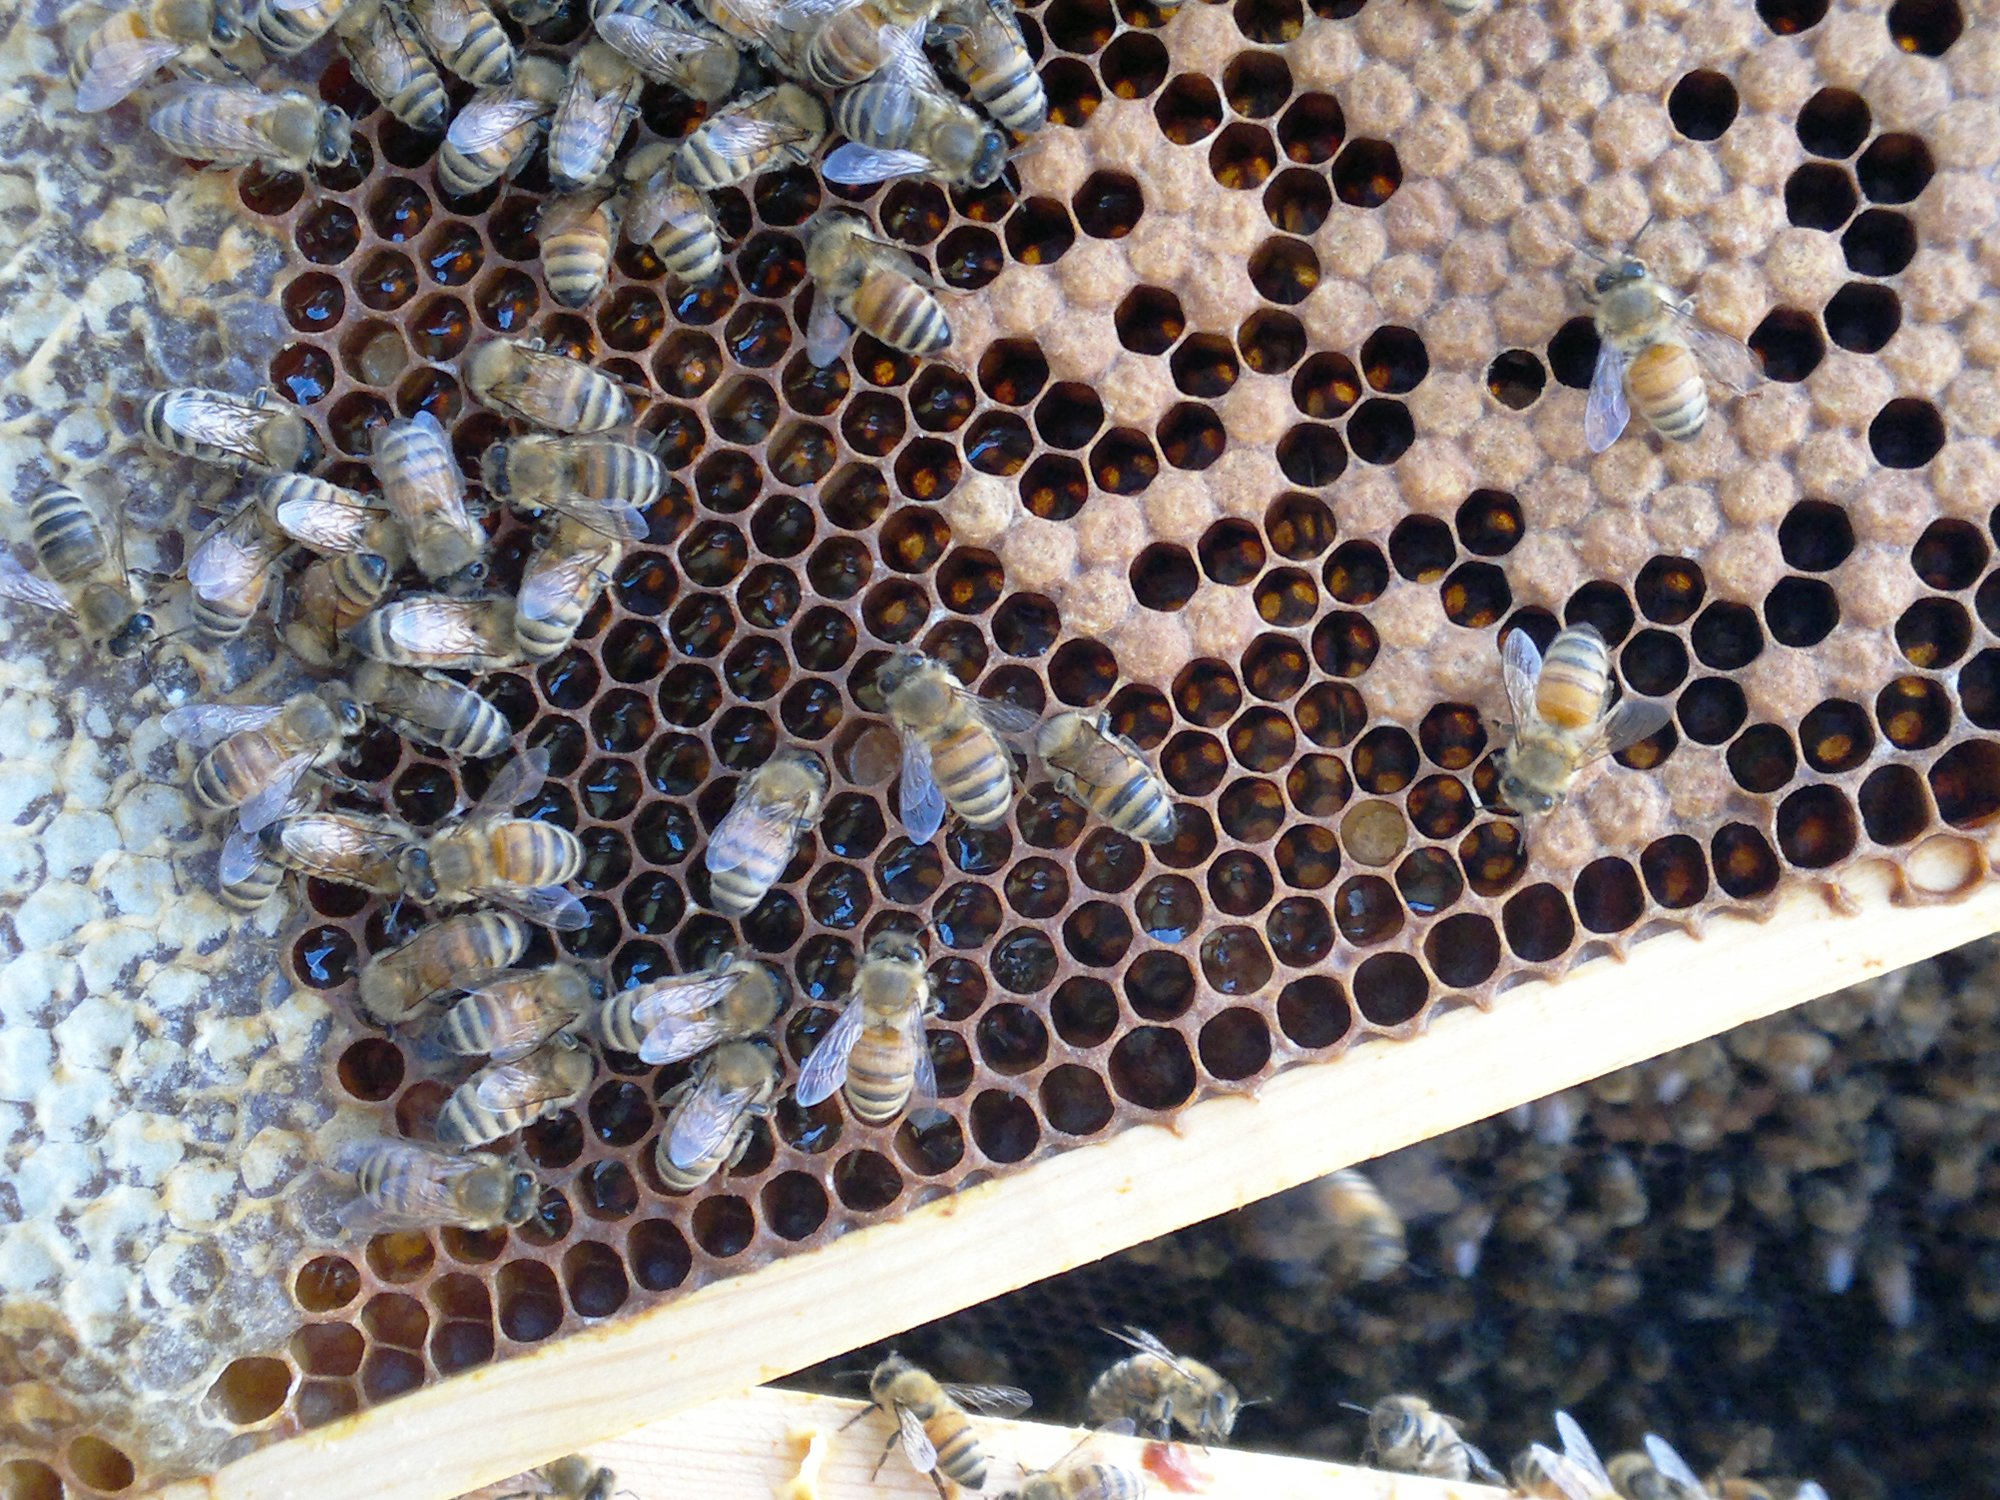 The shrinking brood area being filled with honey and pollen